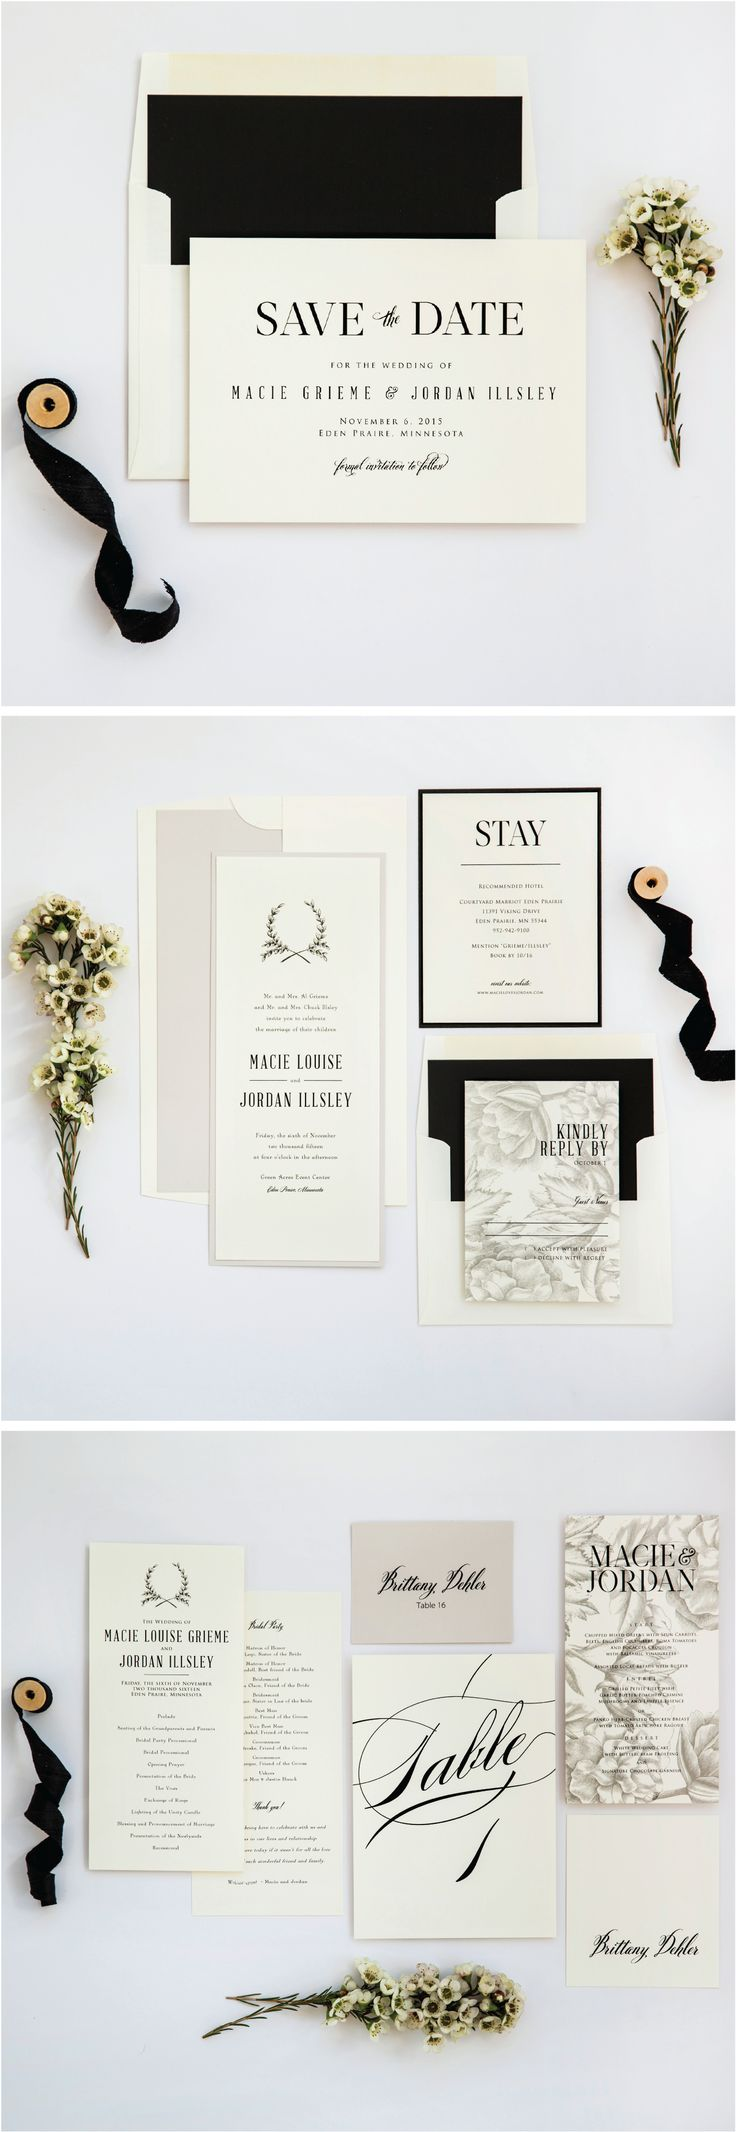 sample of wedding invitation letter%0A Ivory  Stone and Black Neutral Rustic Wedding Invitation Suite from  Champagne Press http